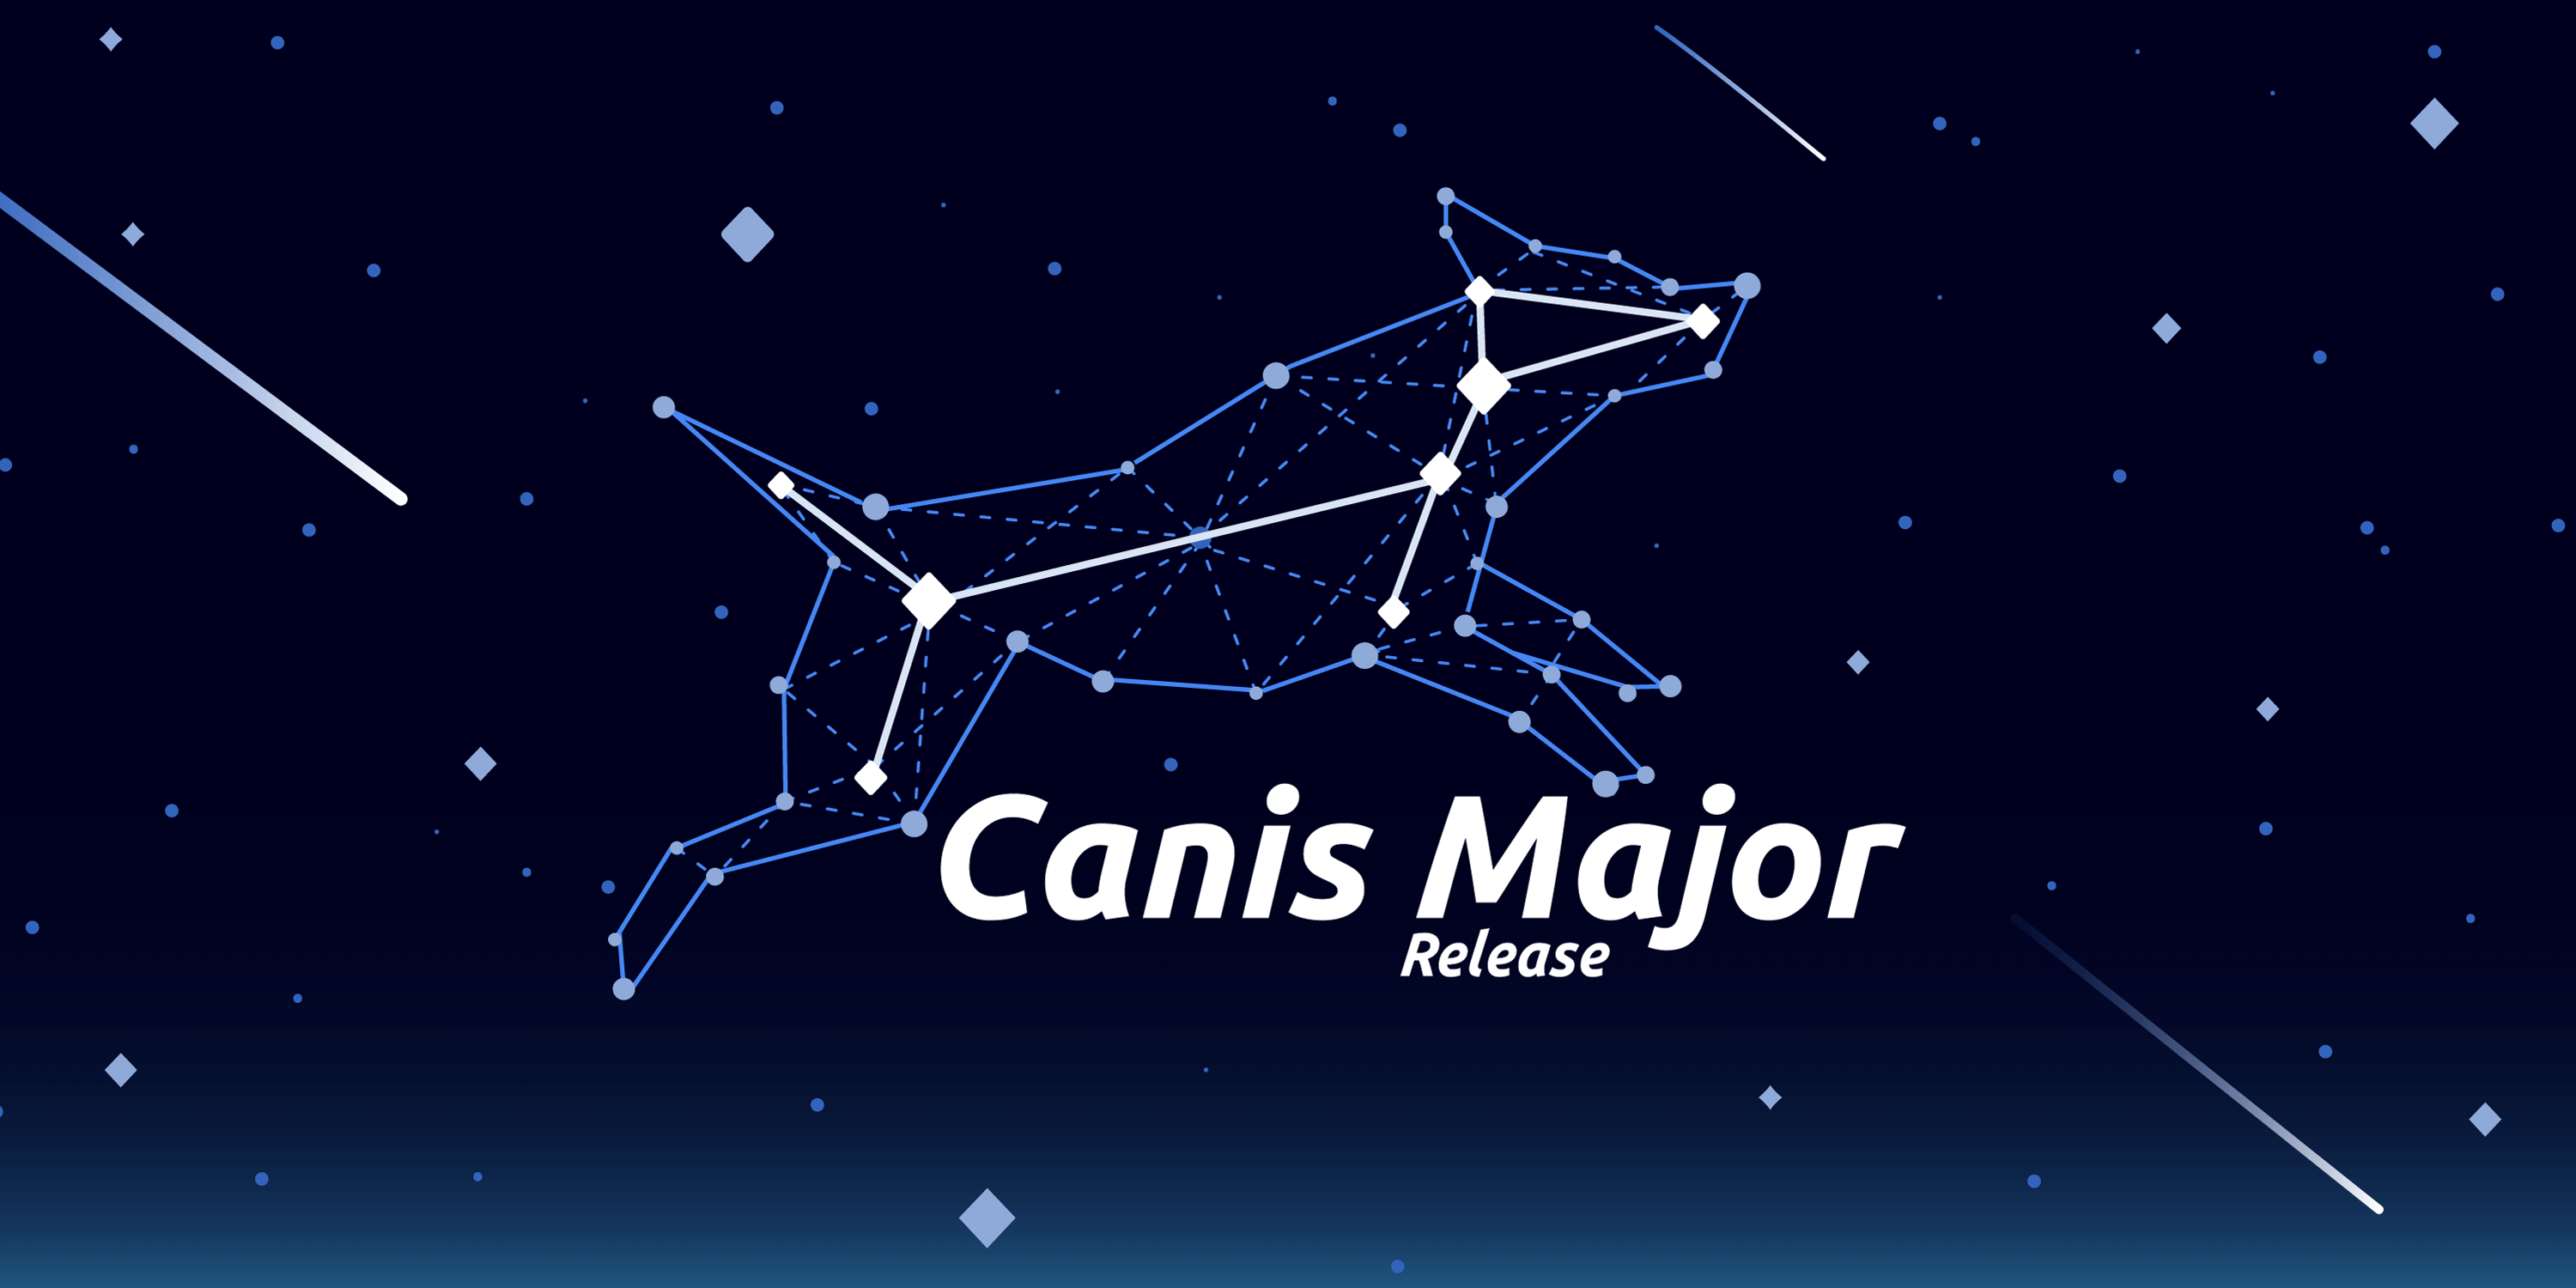 Introducing Grata Canis Major